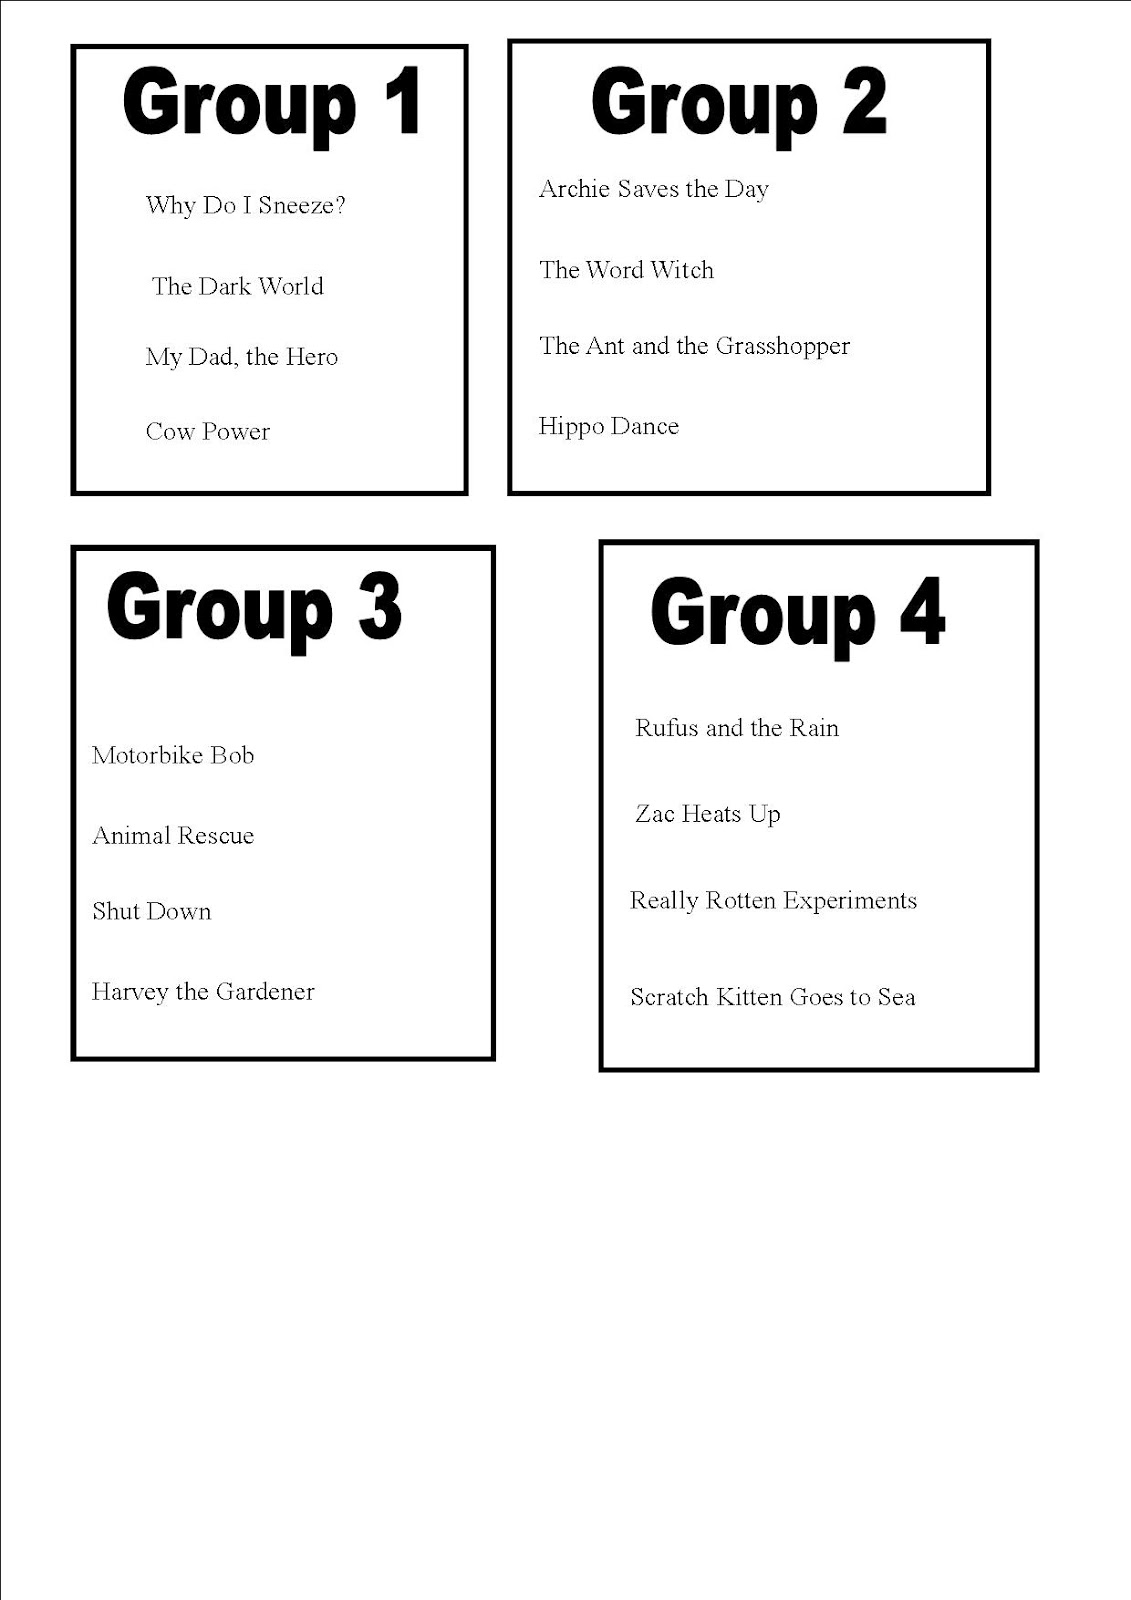 Computer Class Worksheet Images